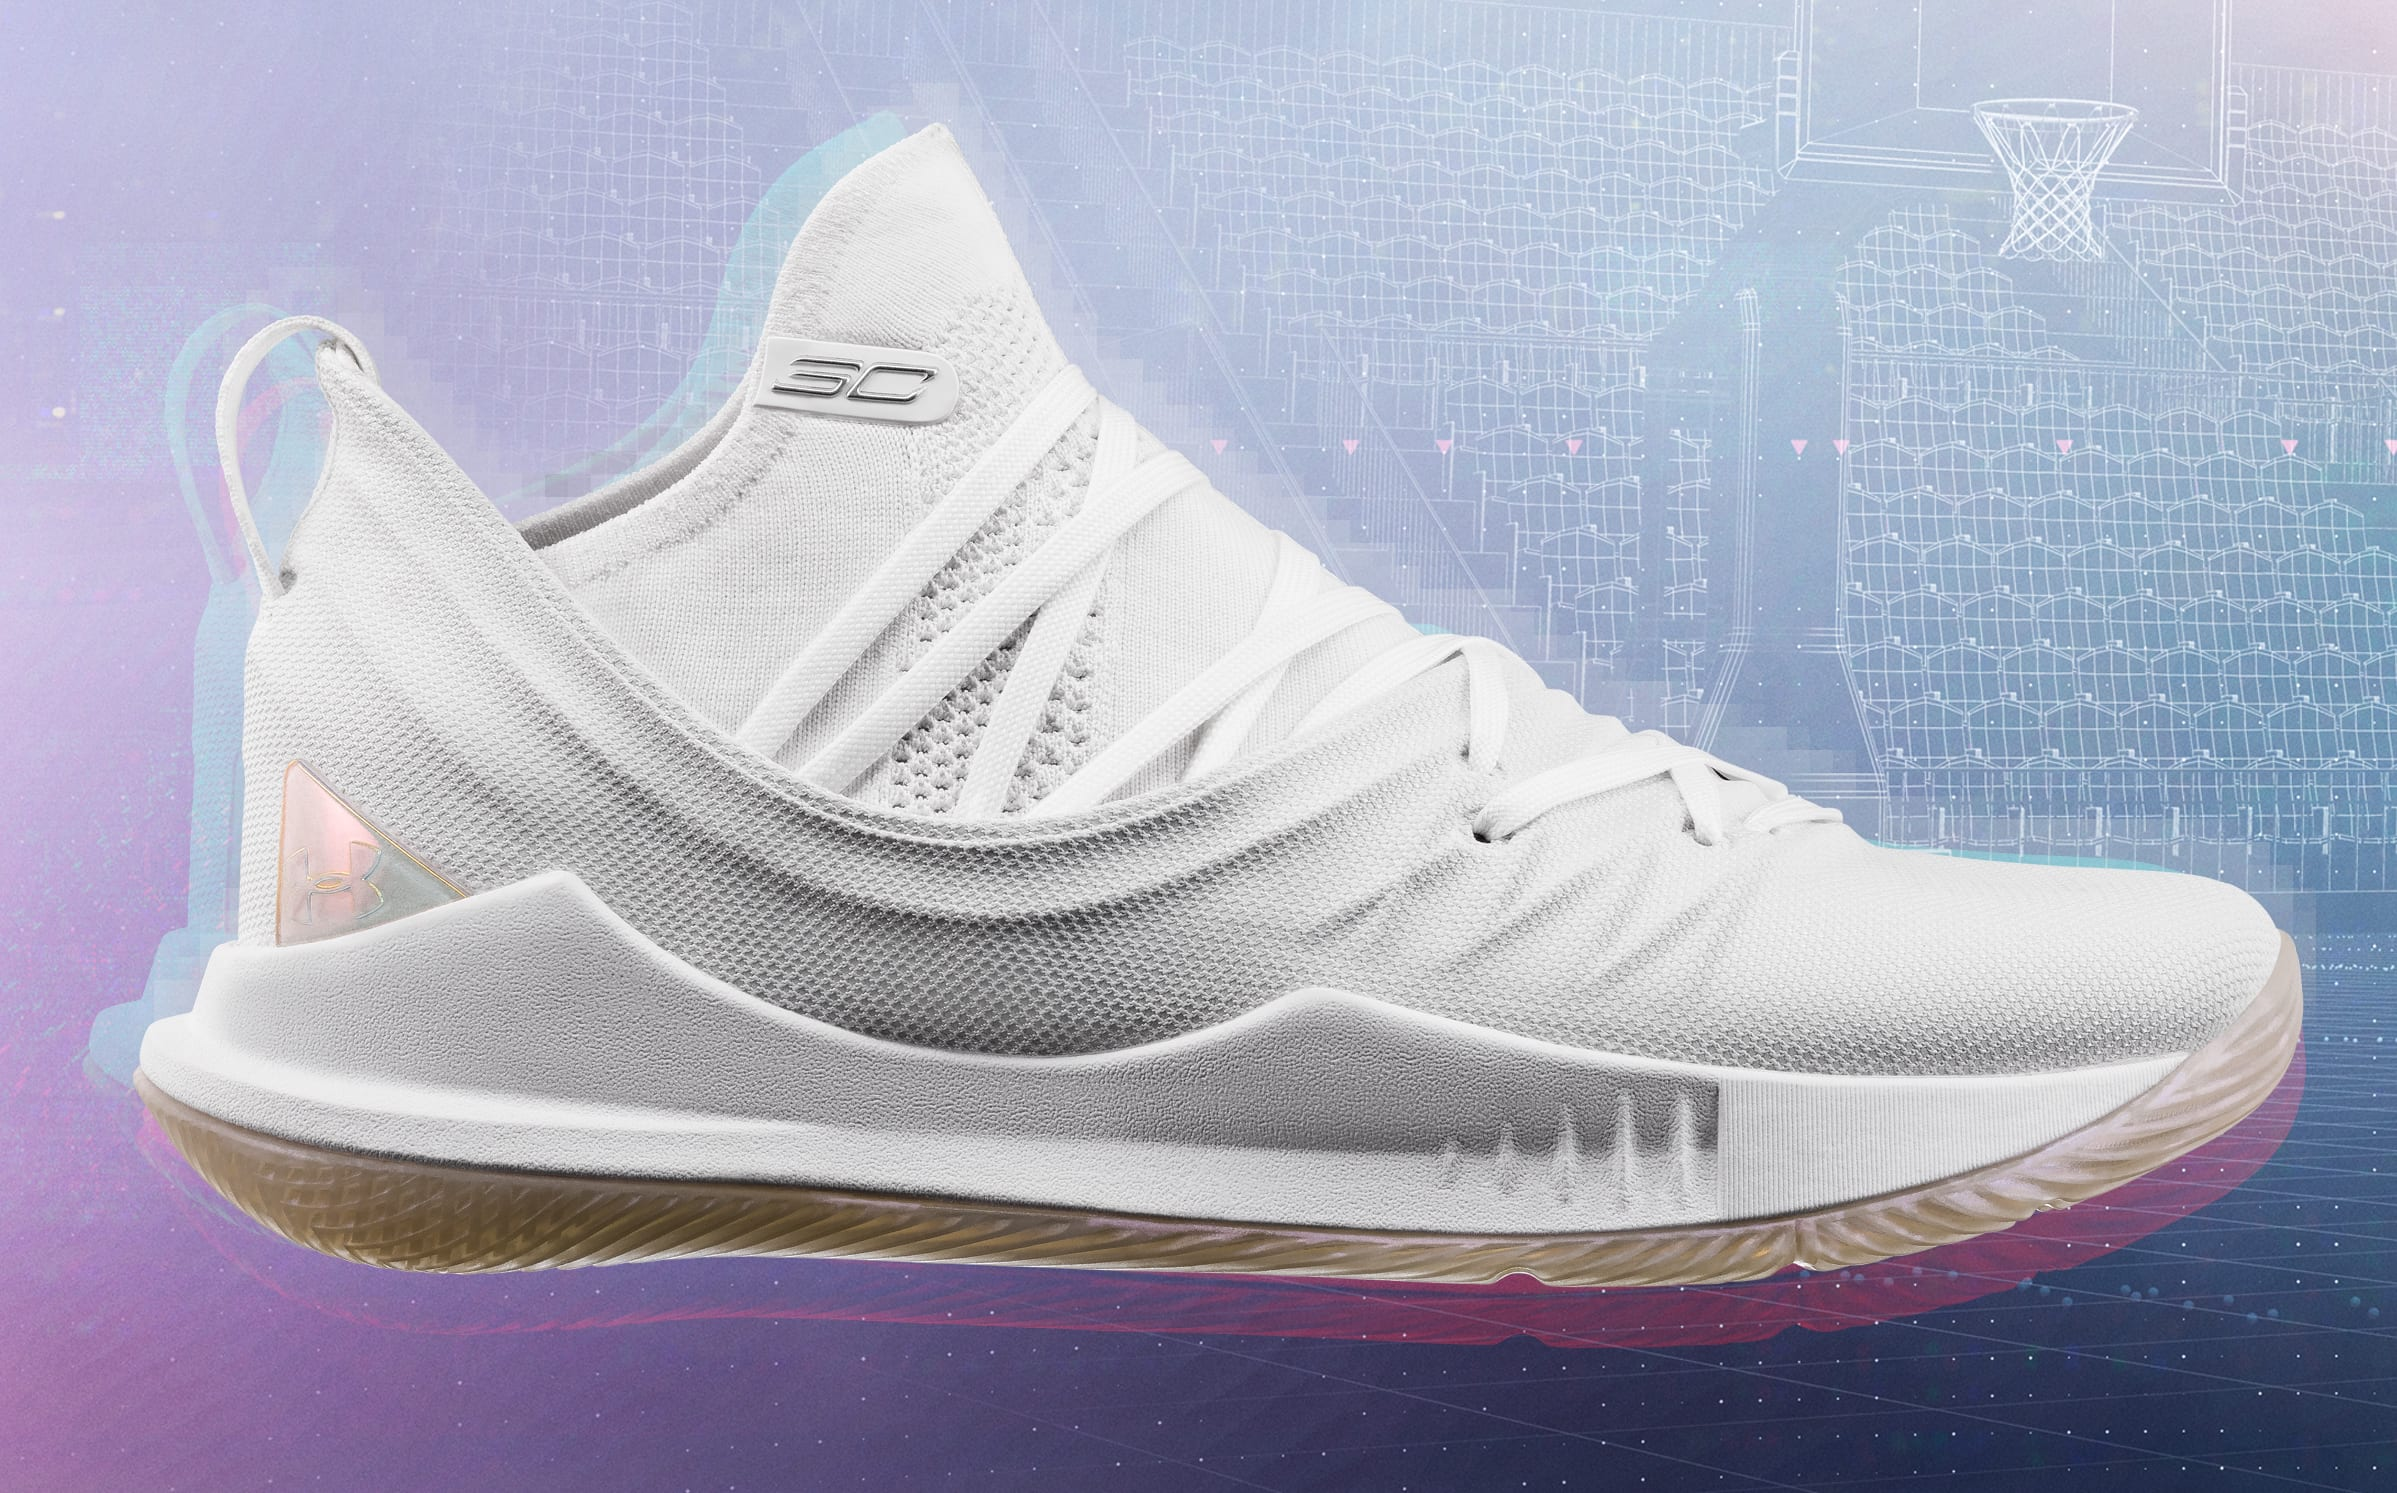 Under Armour Curry 5 'White/White'